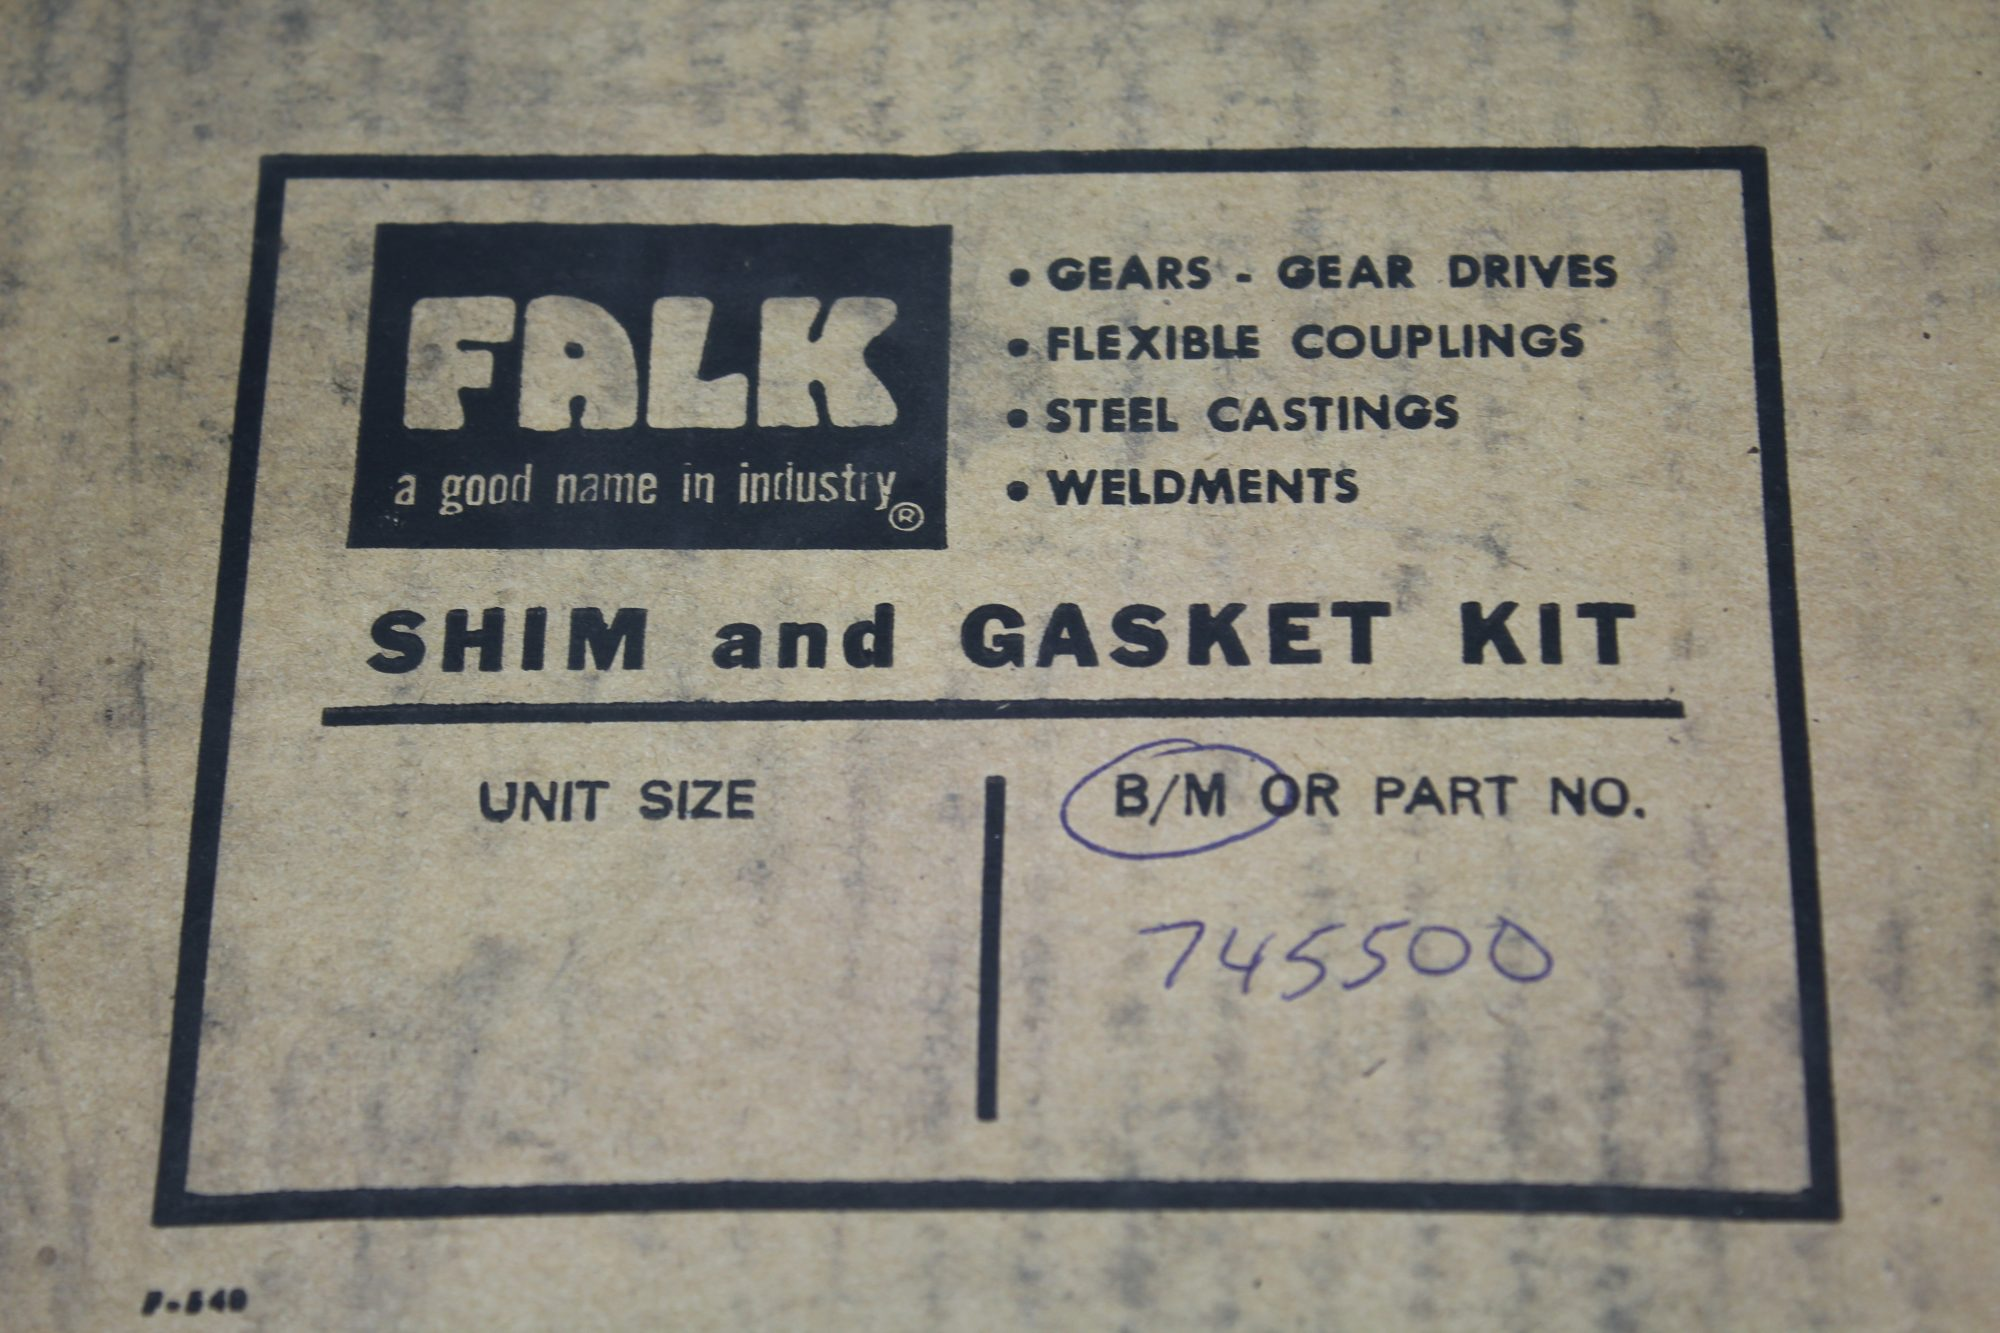 Falk 745500 Shim and Gasket Kit